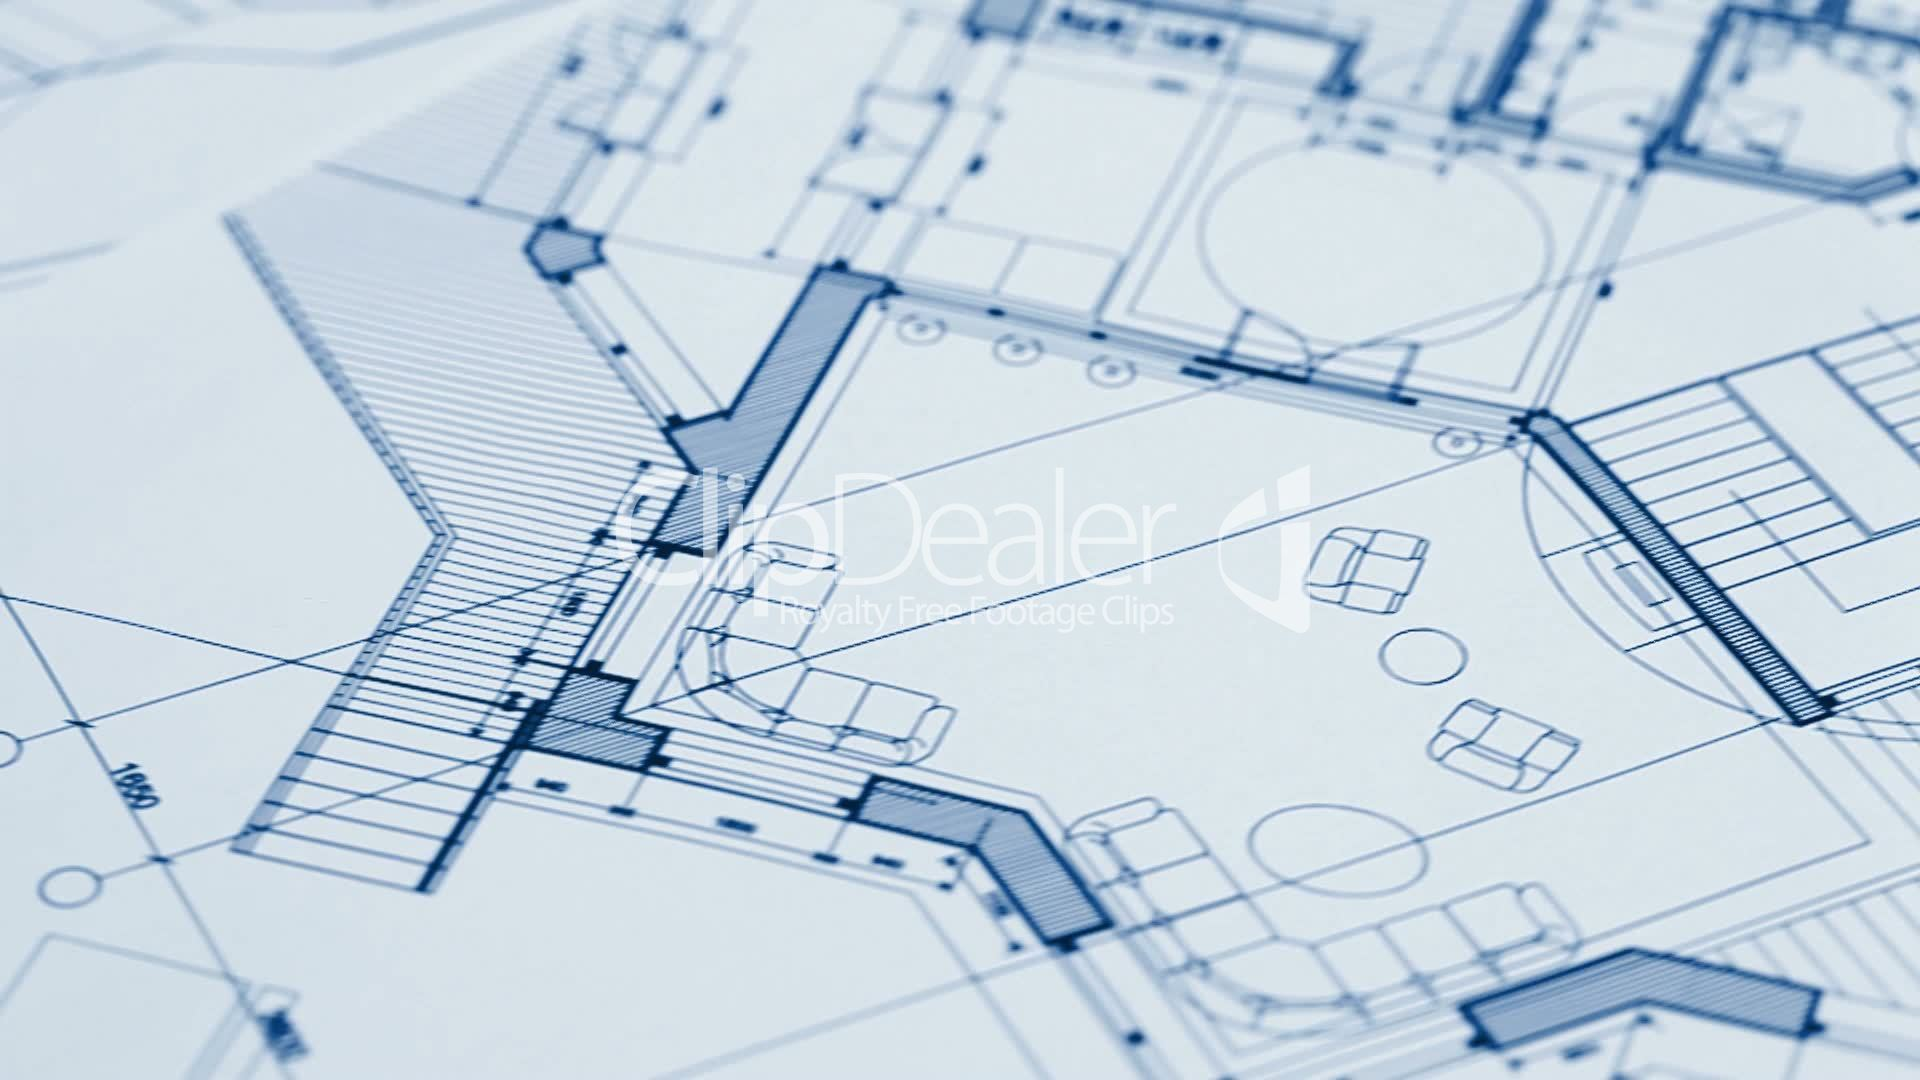 Ceilings Designs Architecture Blueprints